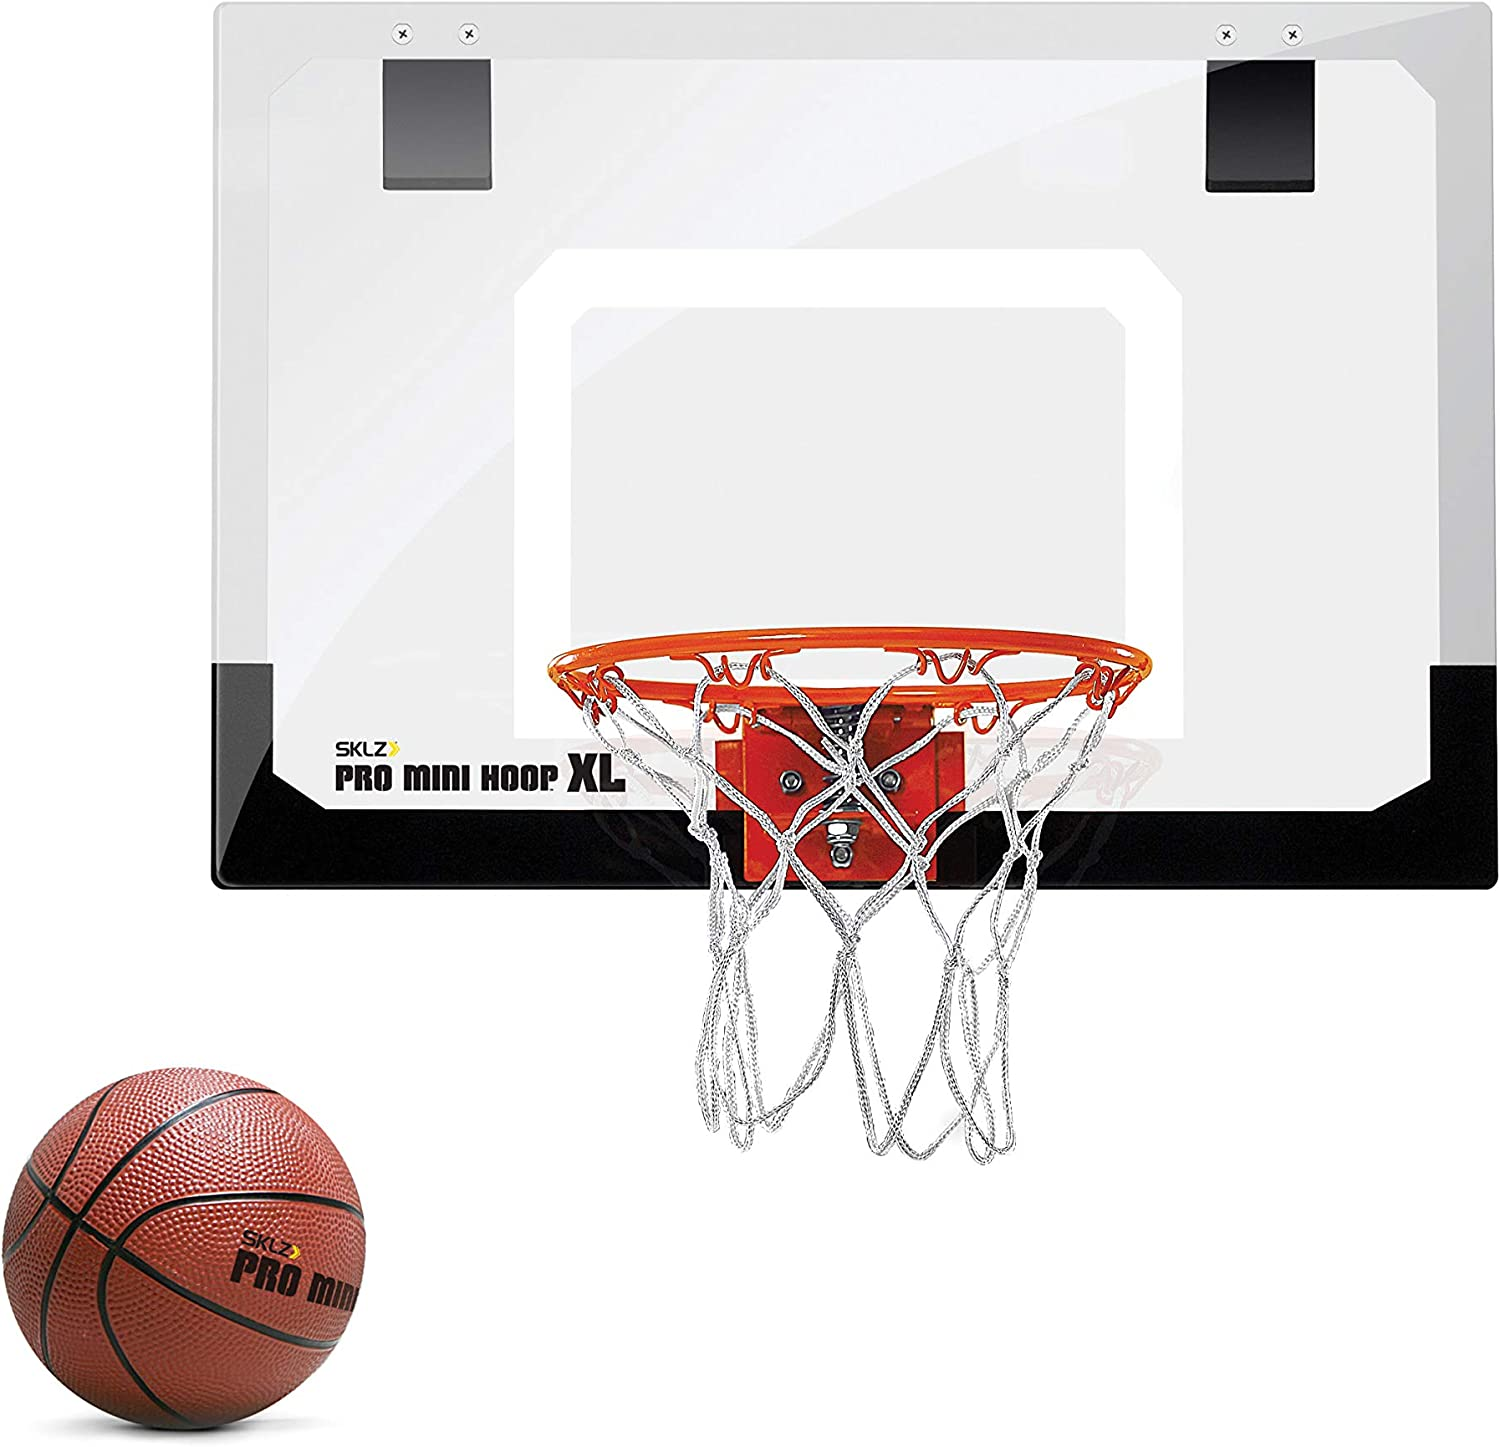 SKLZ Pro Mini Basketball Hoop with Ball, XL (23 x 16 inches) : Wall Mount Basketball Backboards : Sports & Outdoors